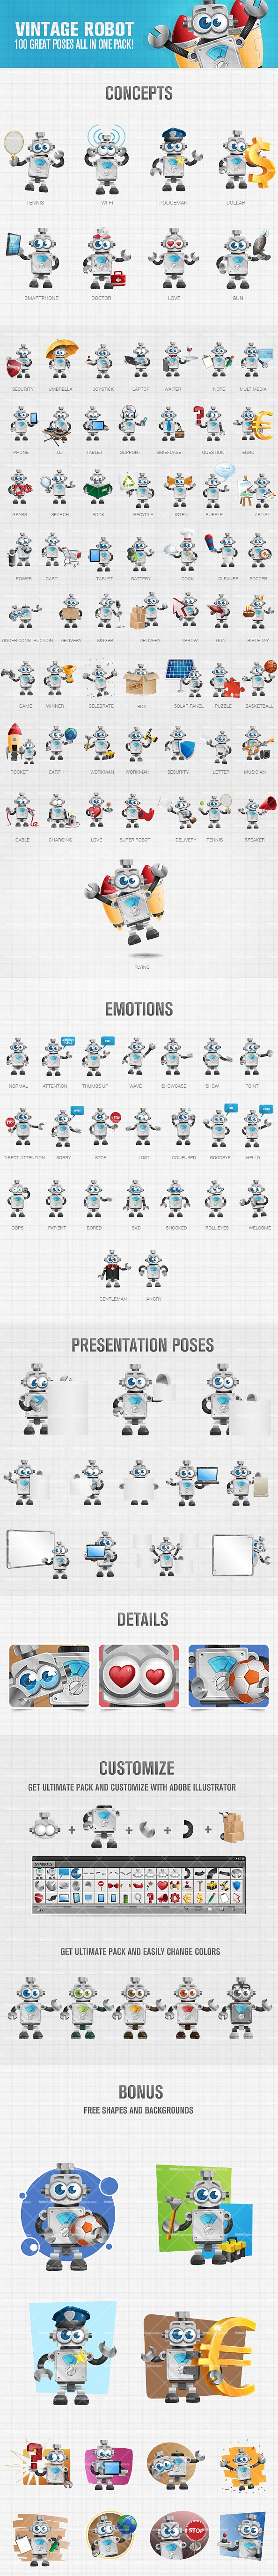 Vintage Robot Vector Cartoon